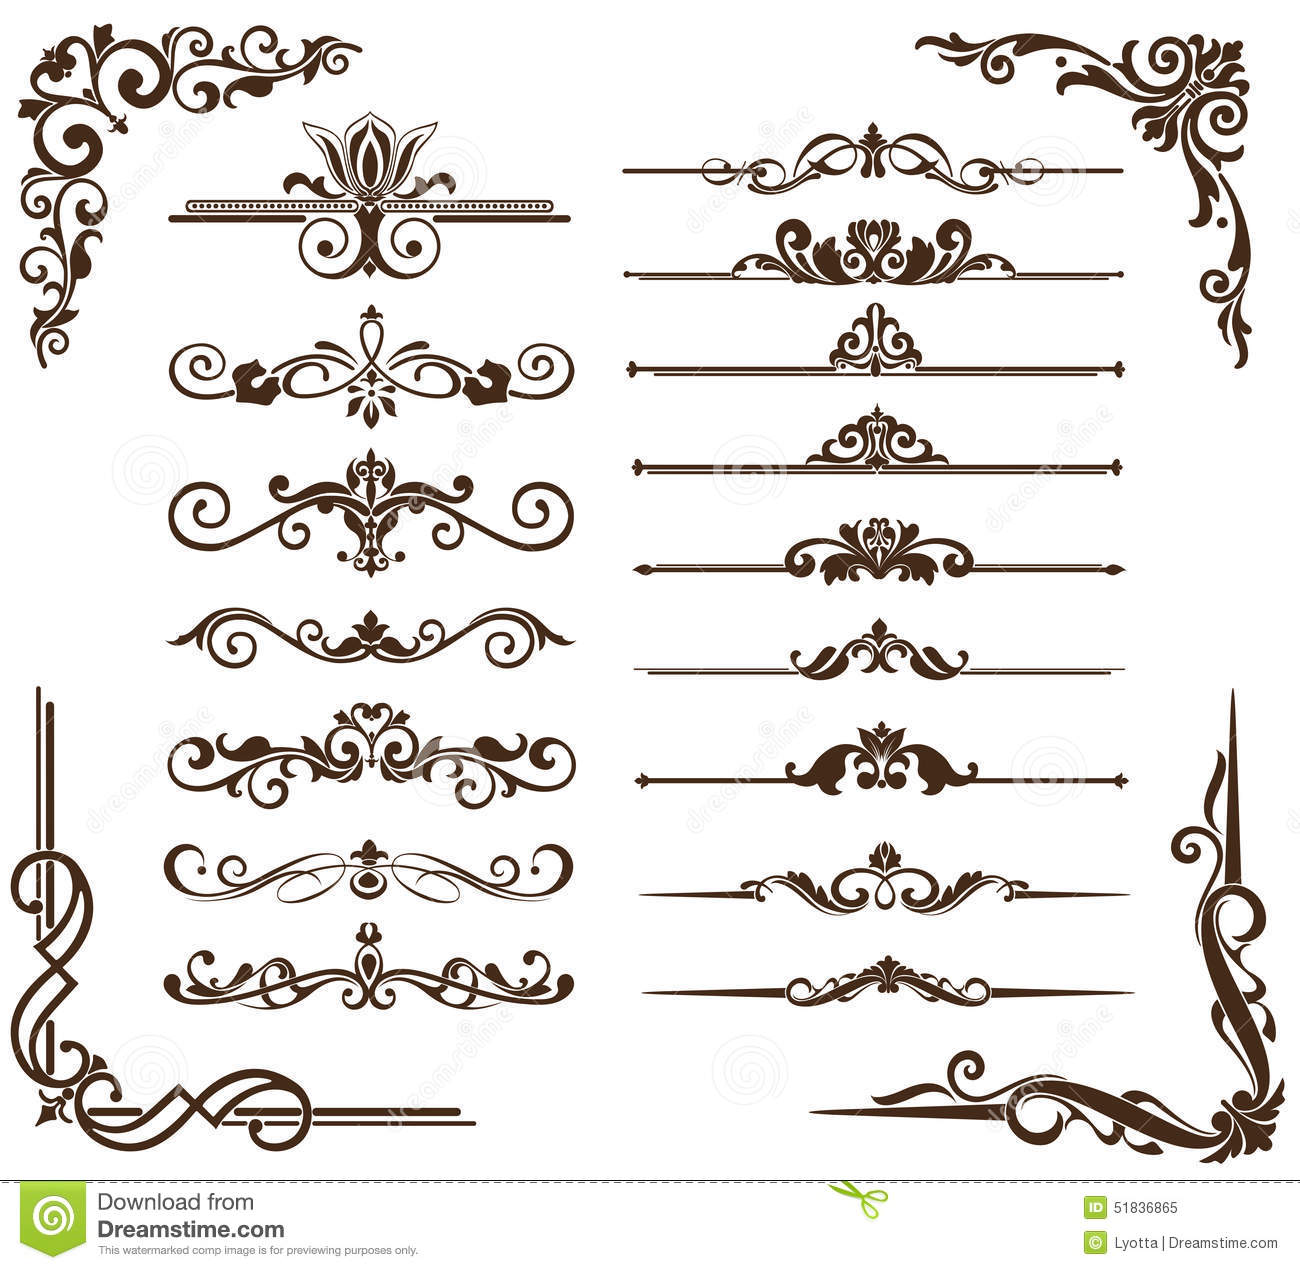 Vector vintage ornaments corners borders stock vector for Art et decoration download